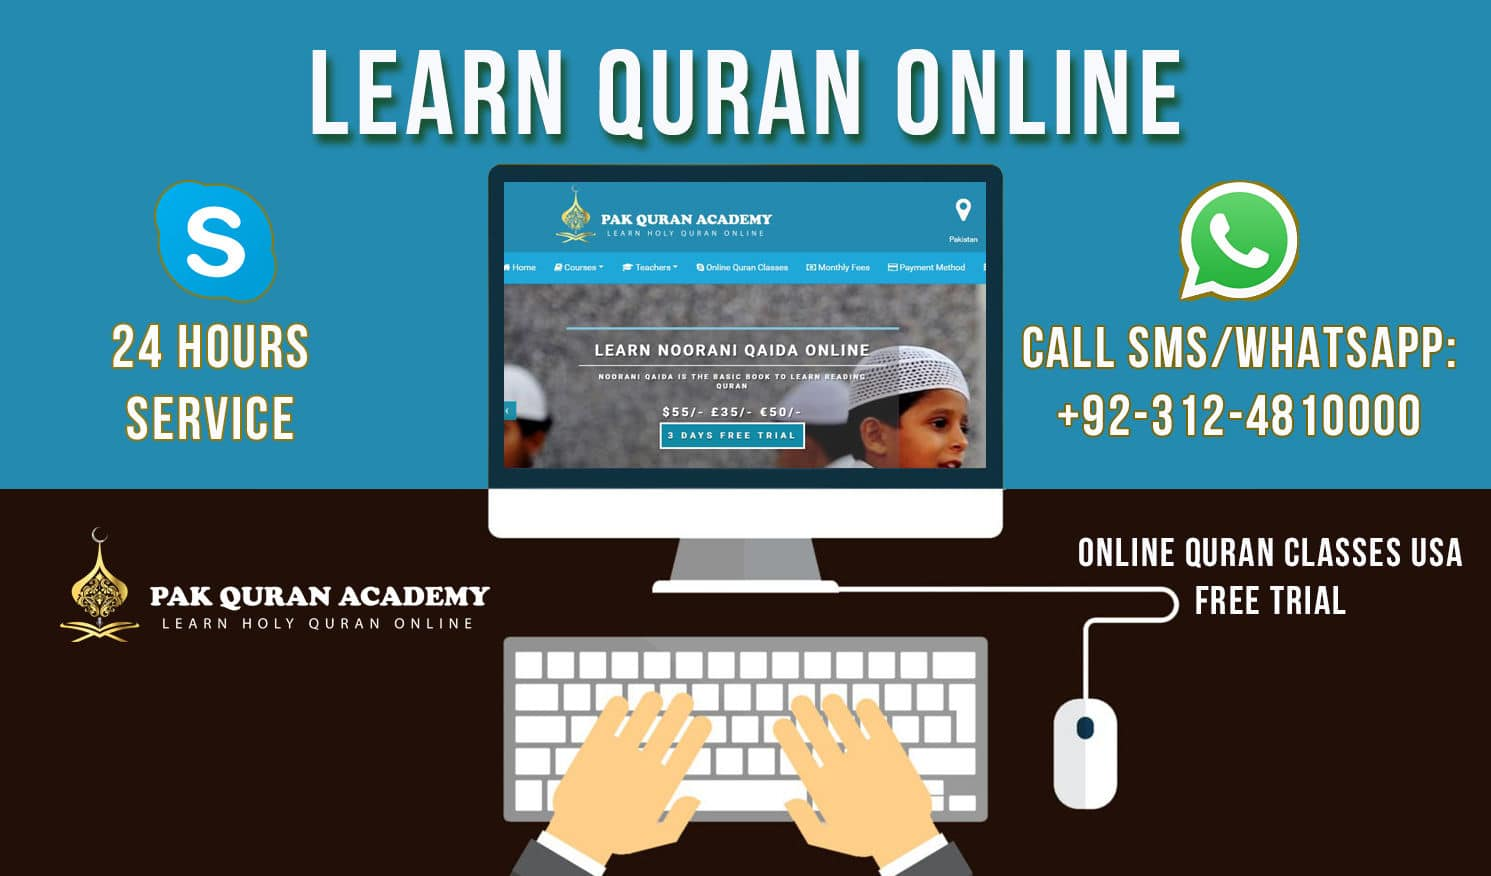 Learn Quran Online USA